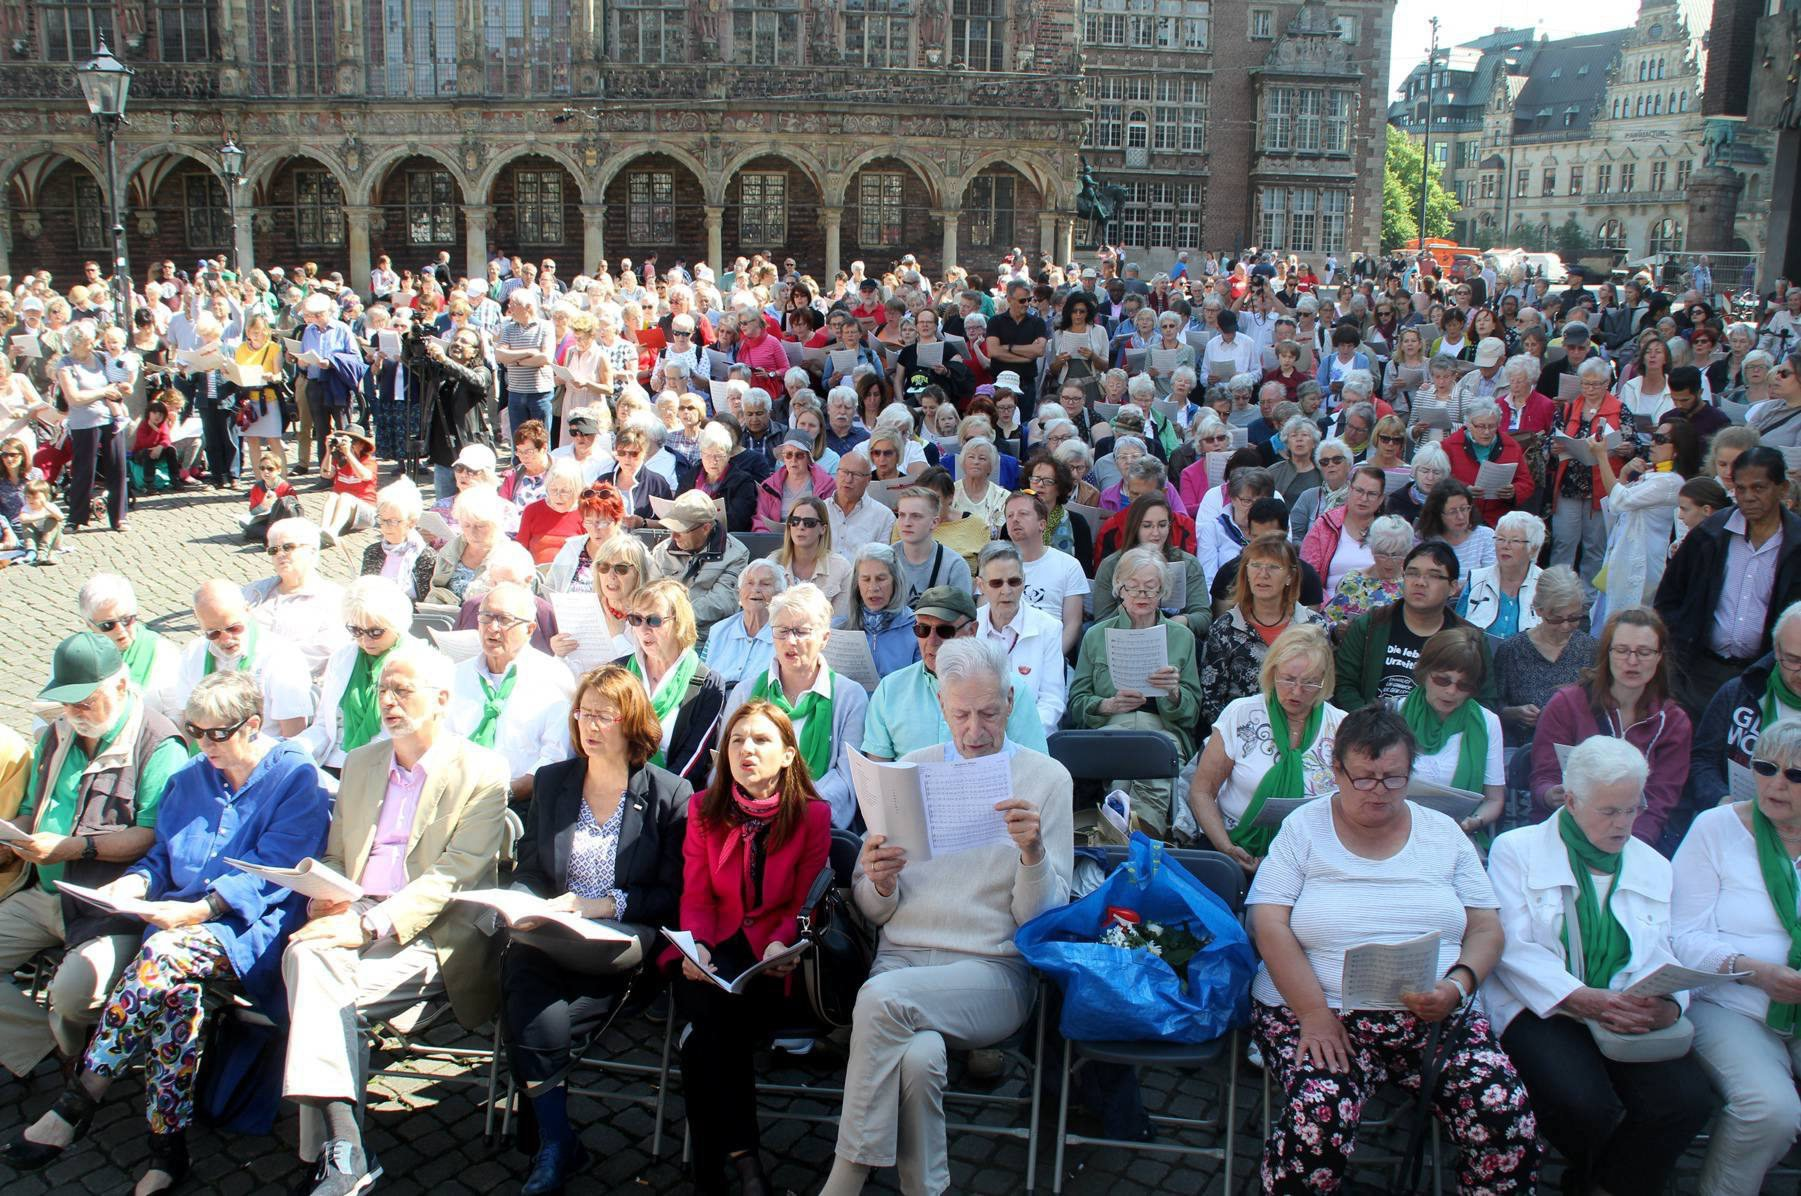 Https Nordbuzz De Region Bremen Oldenburg Public Viewing Flohmarkt Thedinghausen Termine 2018